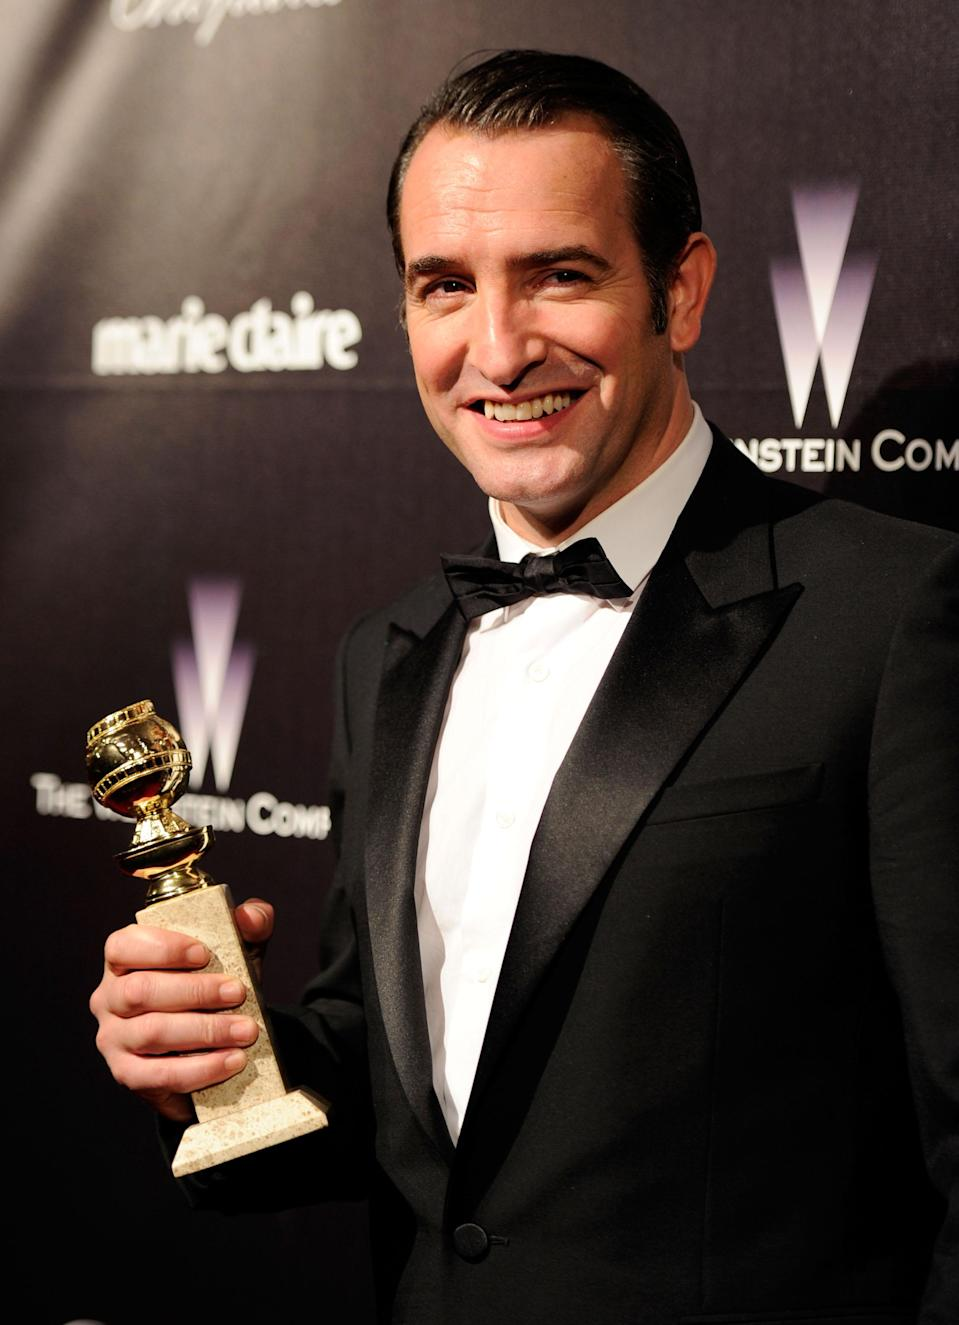 """Jean Dujardin is nominated for his role in the silent film, """"The Artist."""" (Photo by Frazer Harrison/Getty Images)"""